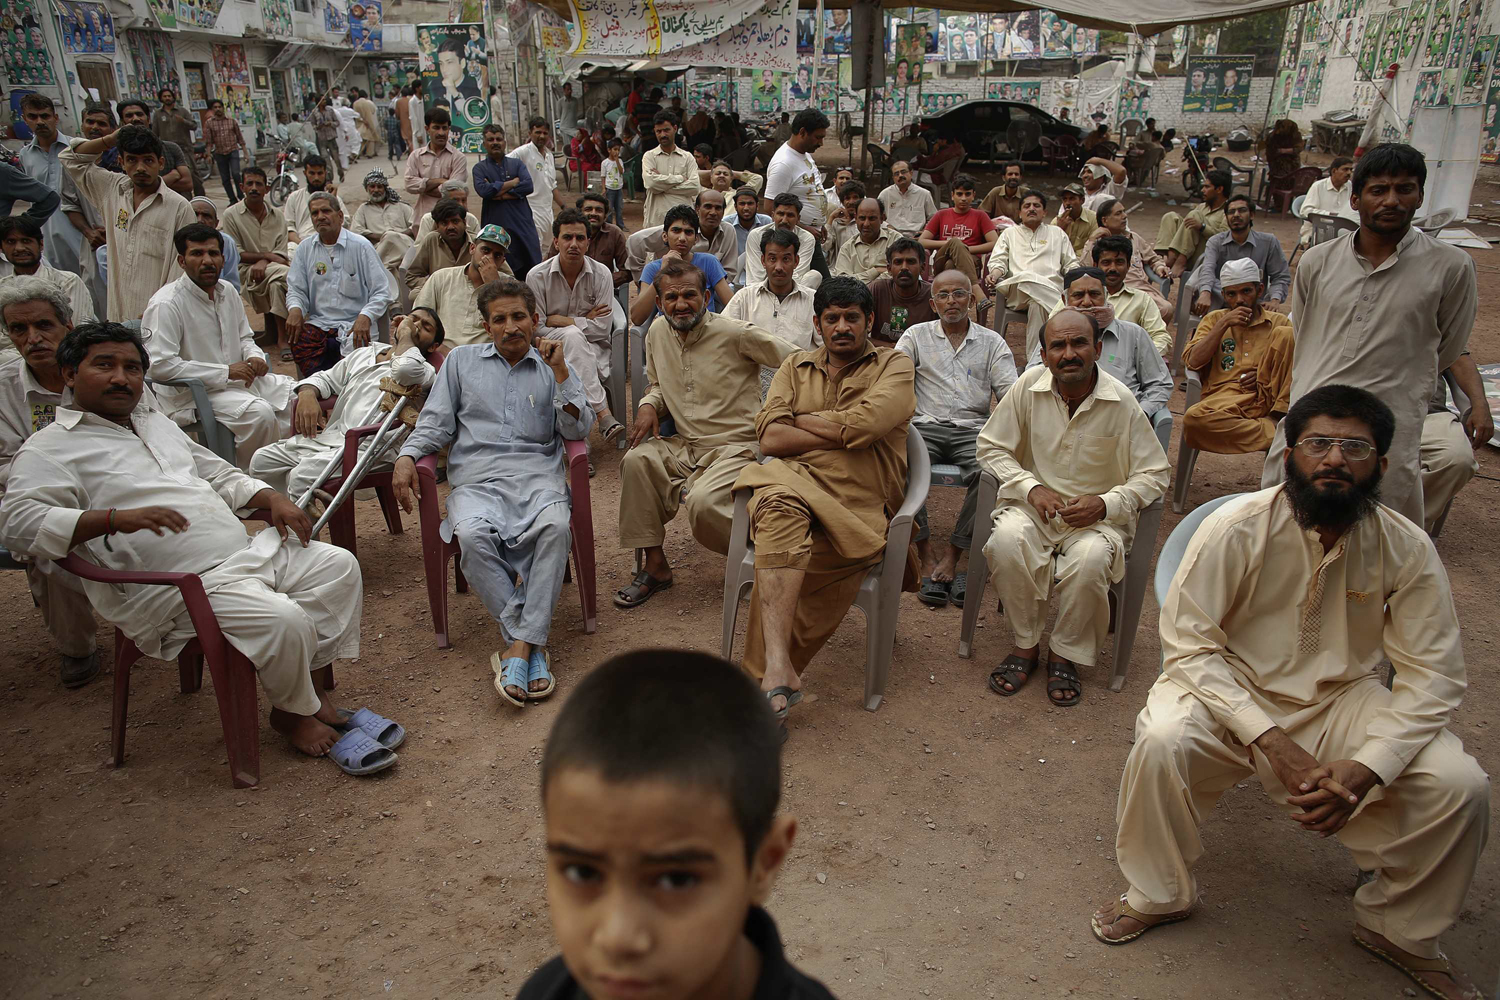 May 11, 2013. Supporters of the Pakistan Muslim League, Nawaz, watch news on a television screen at the party's election headquarters after polling stations closed in Lahore.